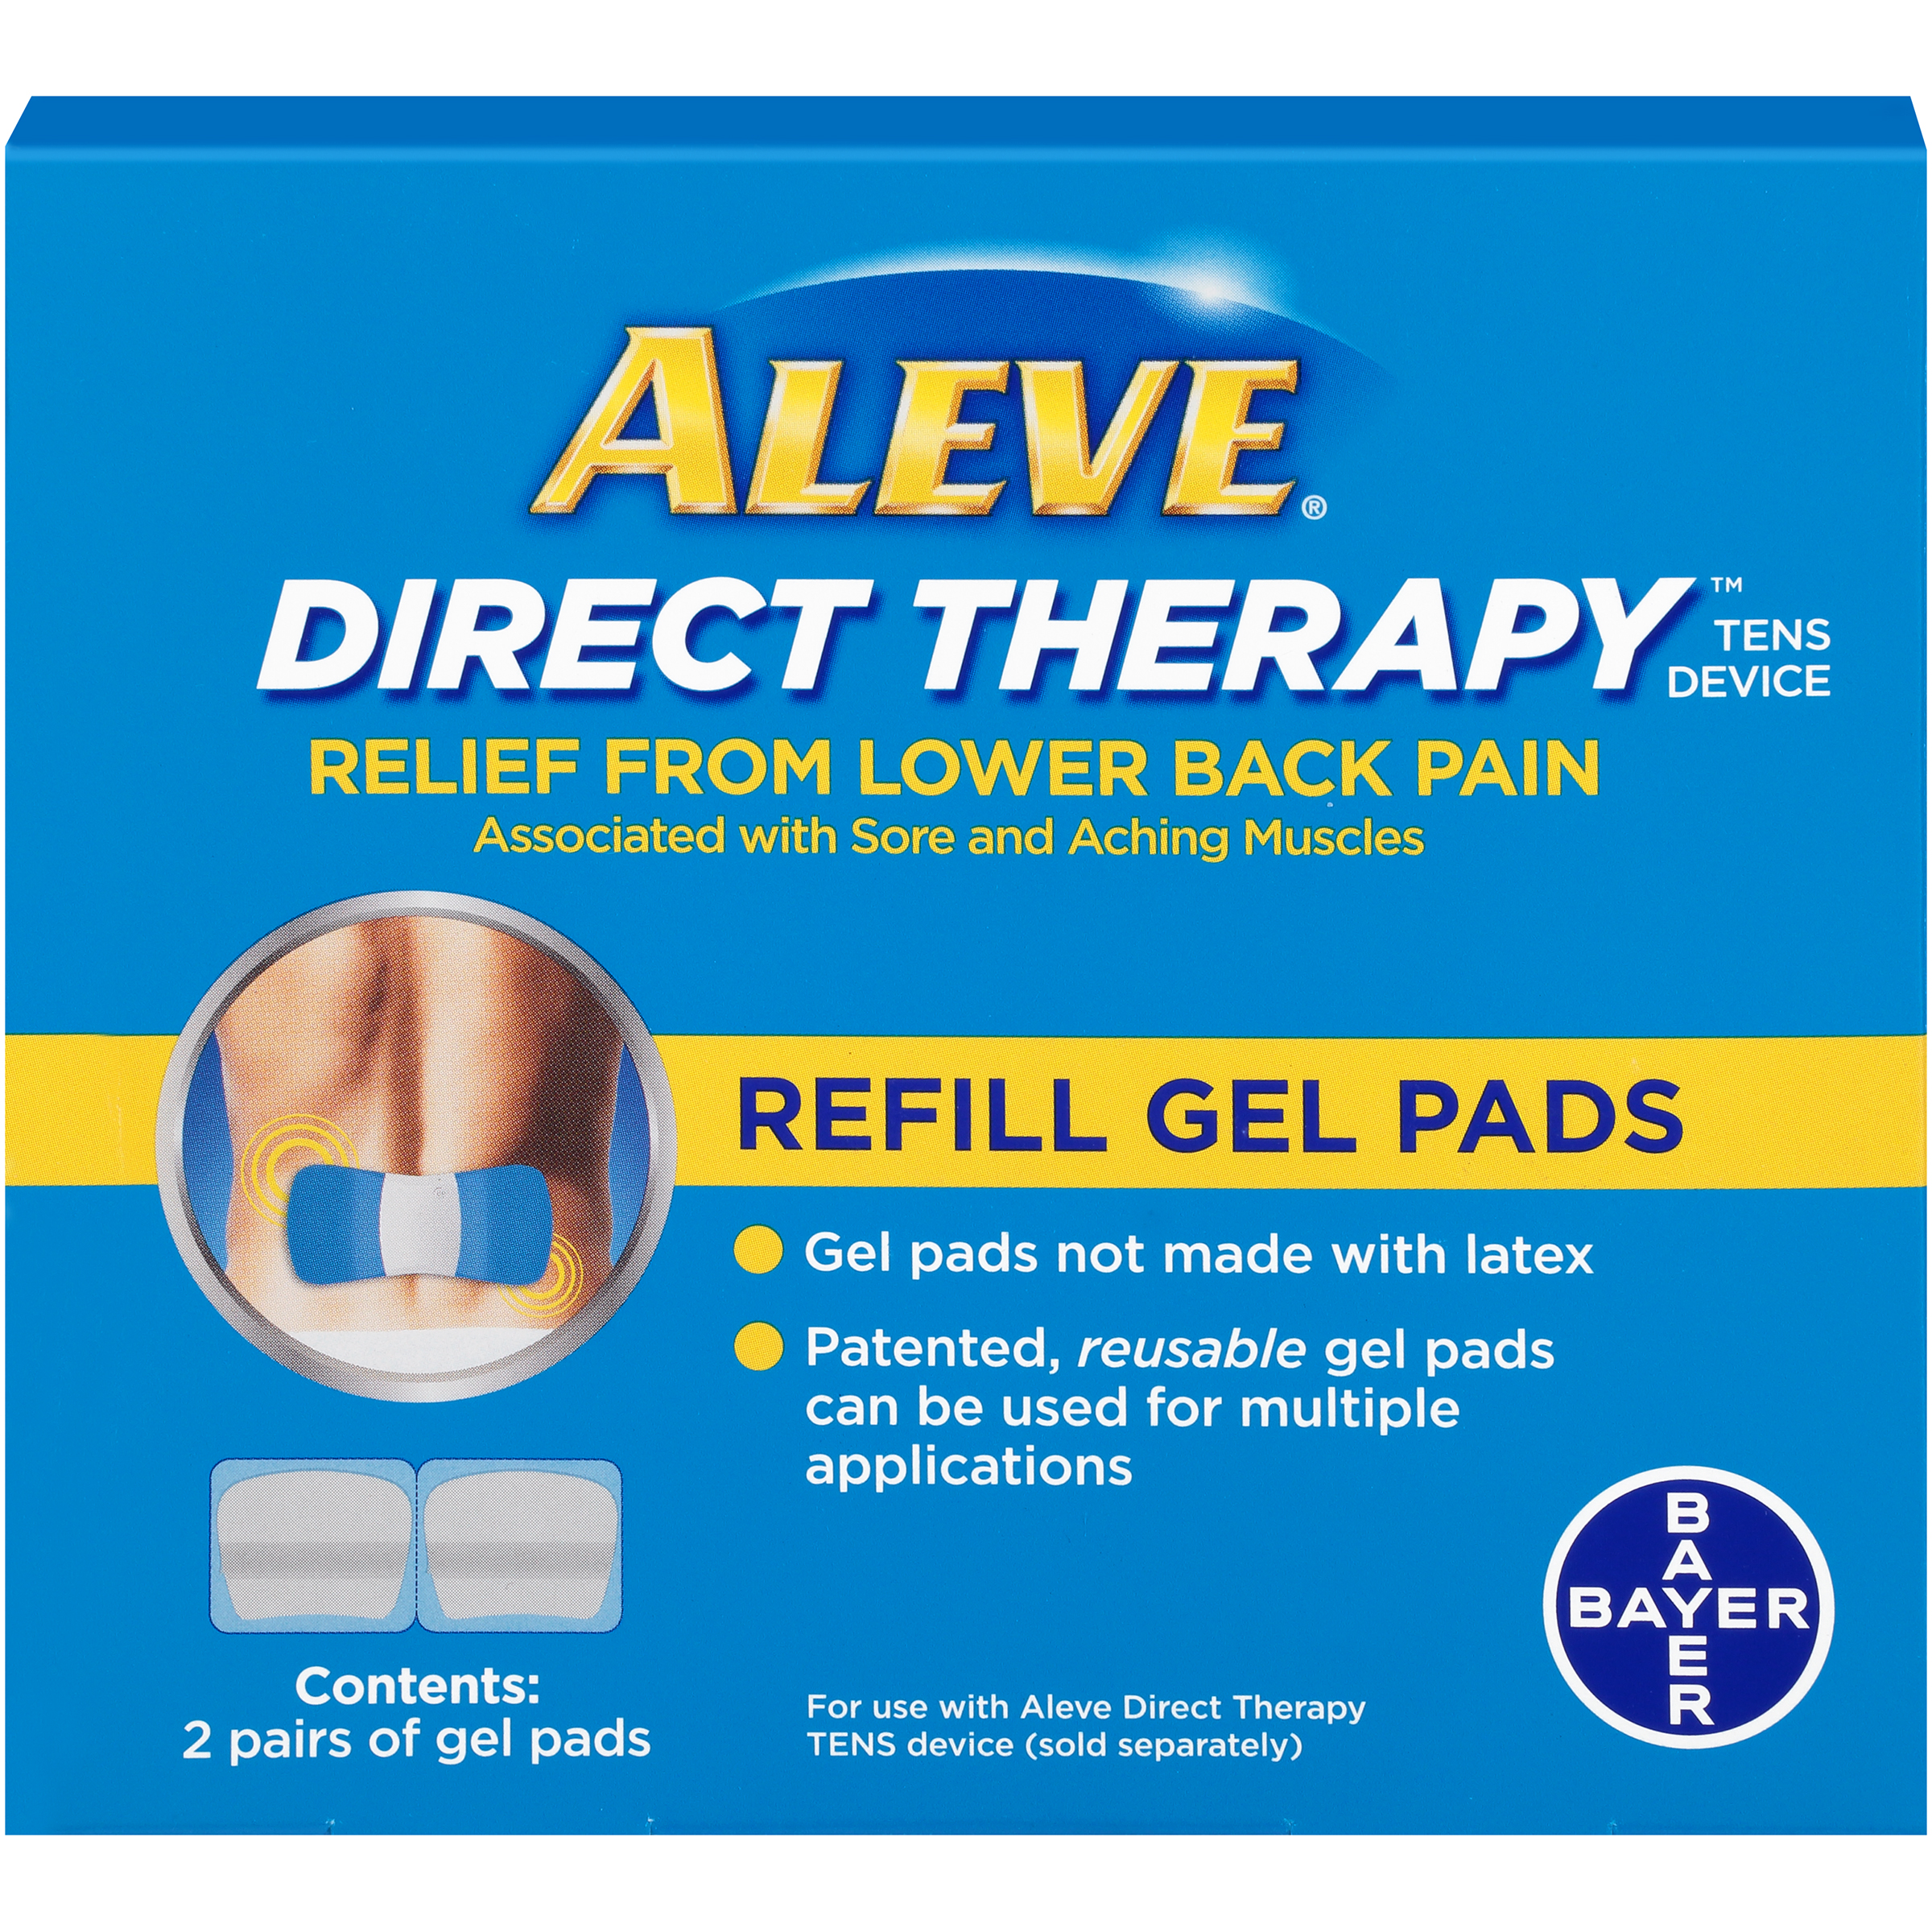 Aleve Direct Therapy Relief From Lower Back Pain Refill Gel Pads - 2 CT